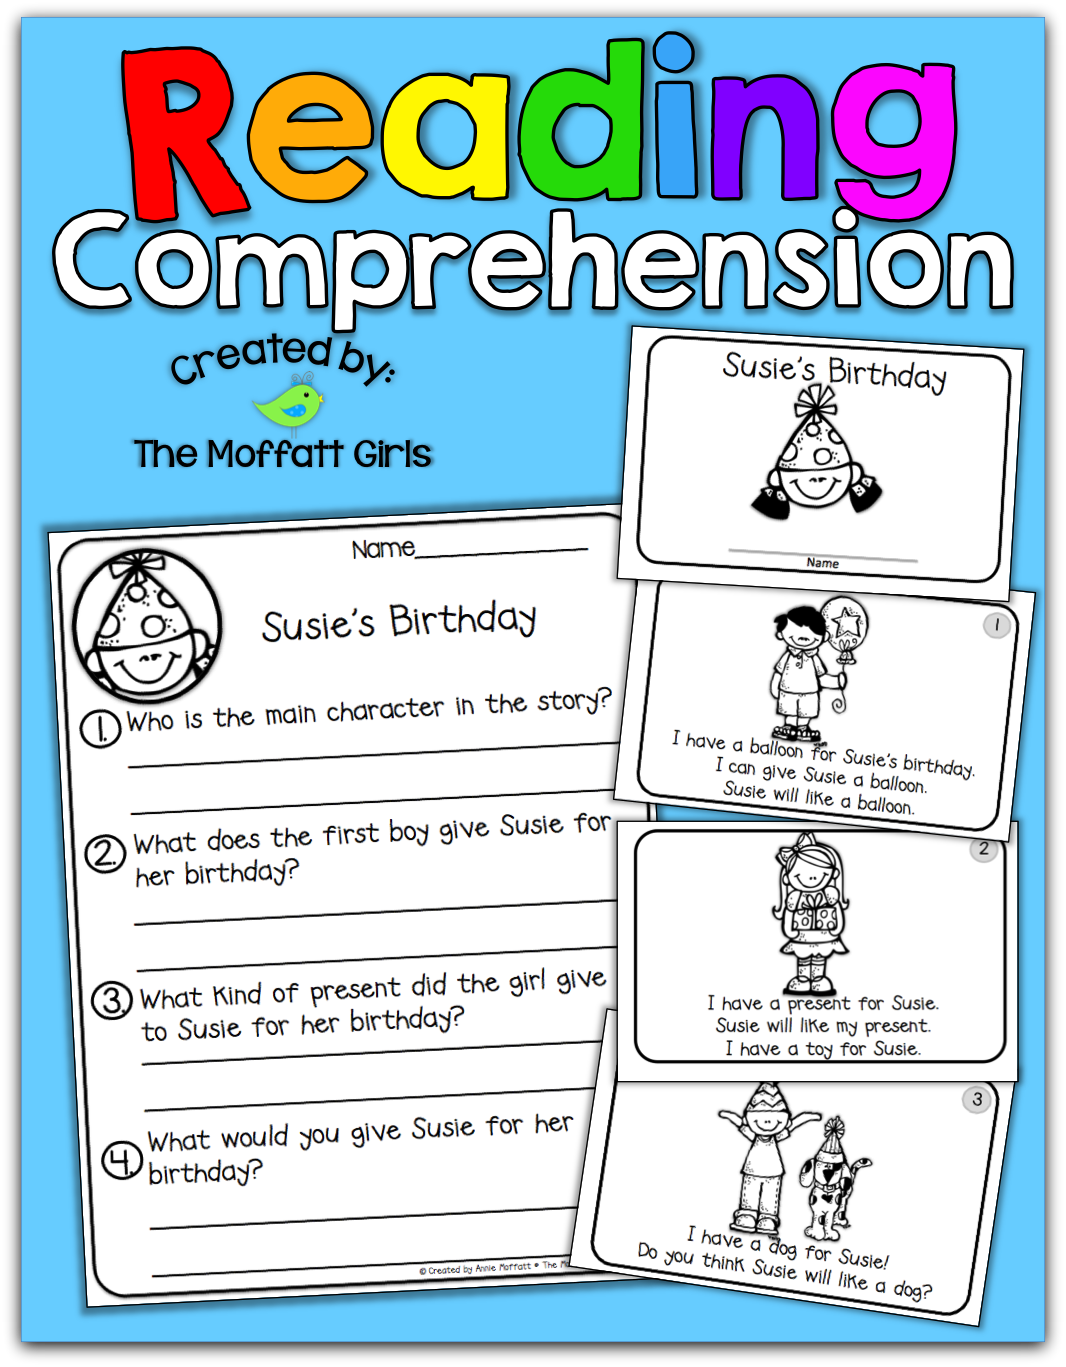 Reading Comprehension Packet | The Moffatt Girls | Bloglovin\'